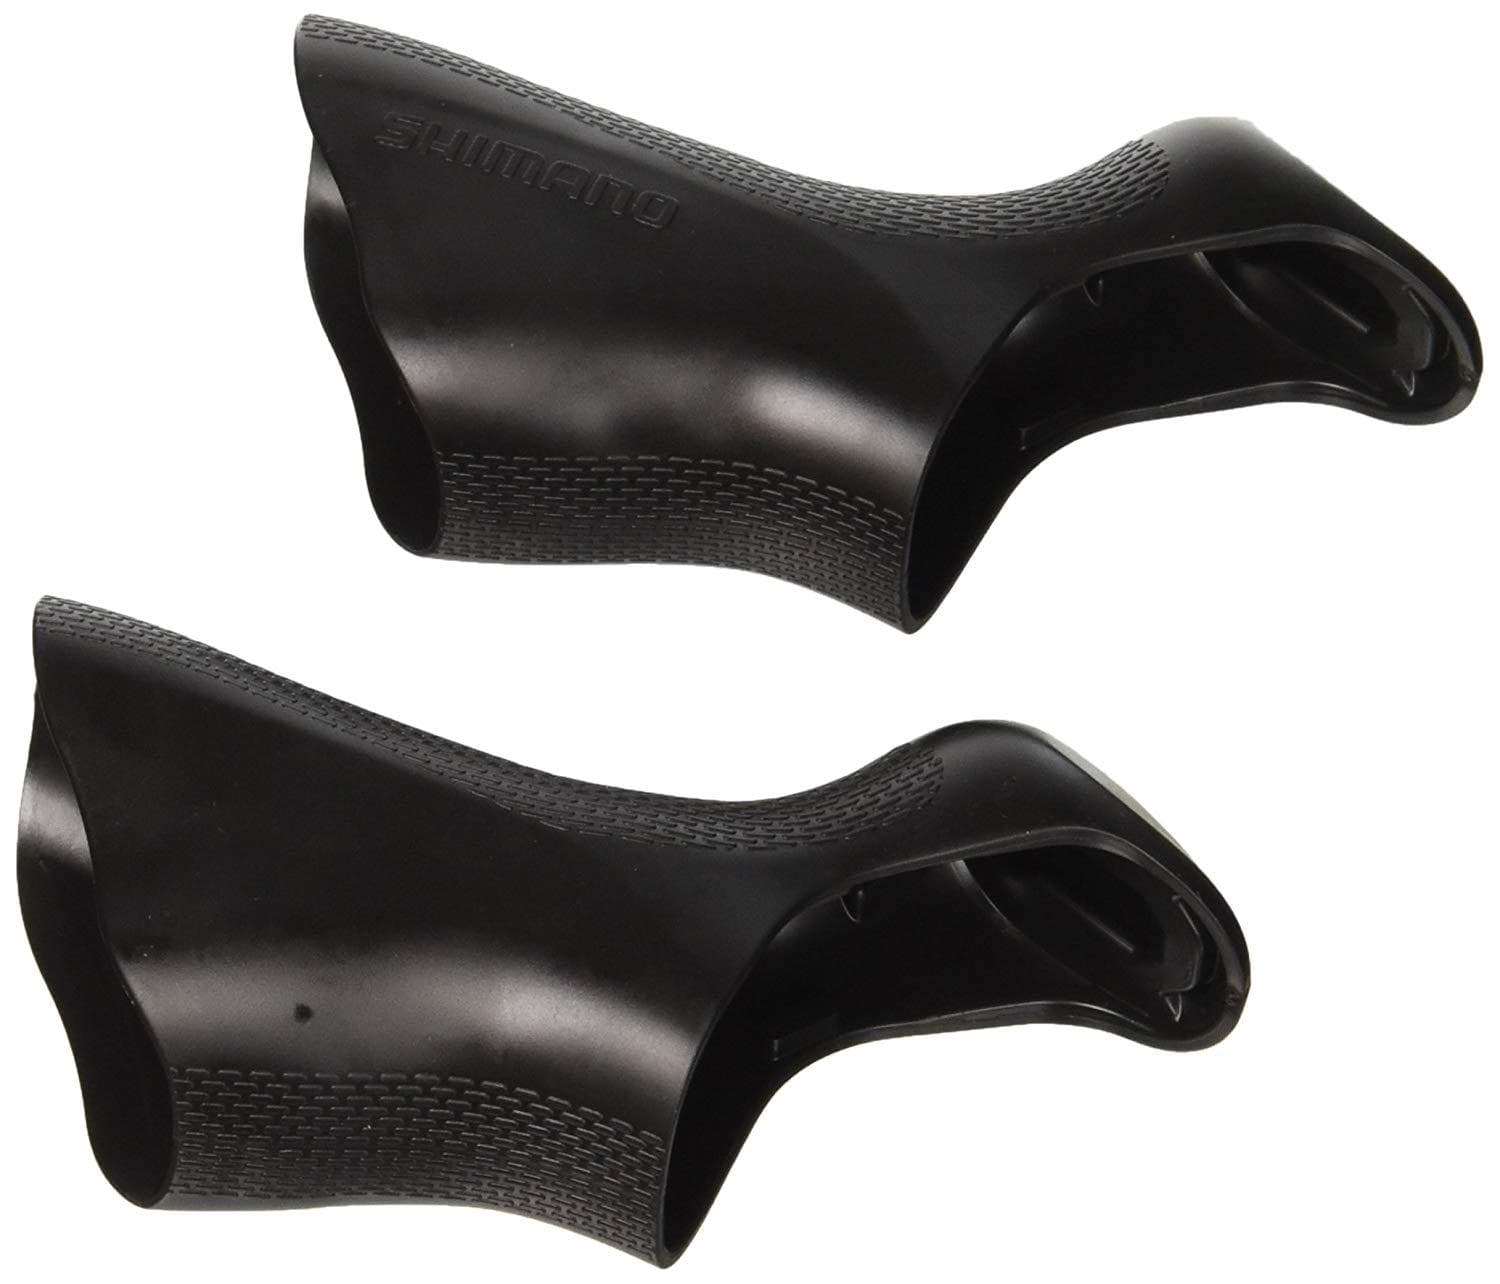 Shimano ST6770 Brake Lever Covers - 6VE 9806